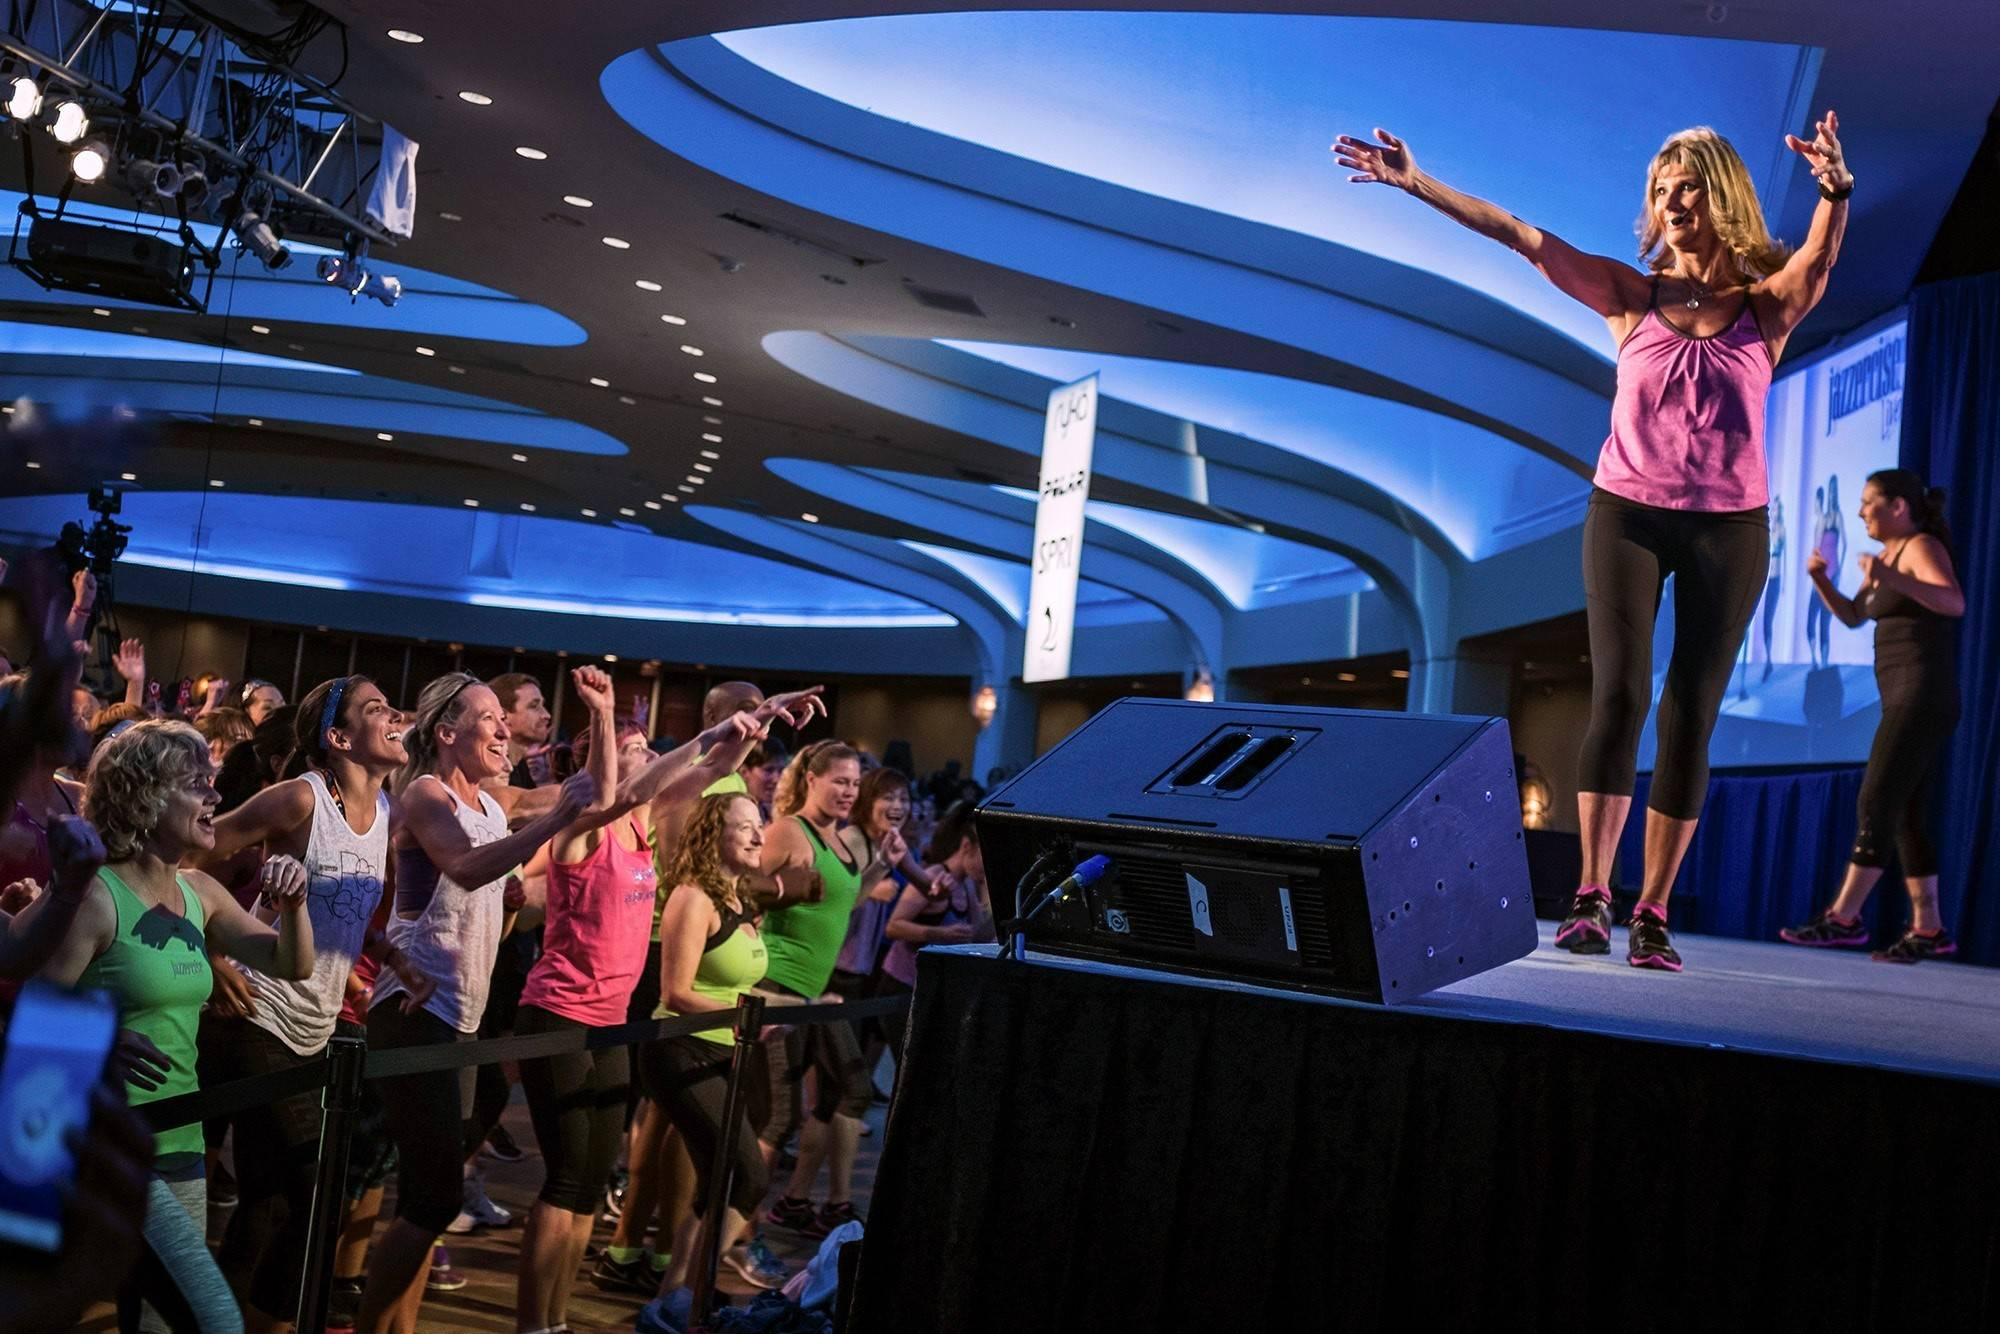 Judi Sheppard Missett, 70, the founder of Jazzercise, leads a workout. Missett started teaching her dance-based workout program 45 years ago in the Chicago area.